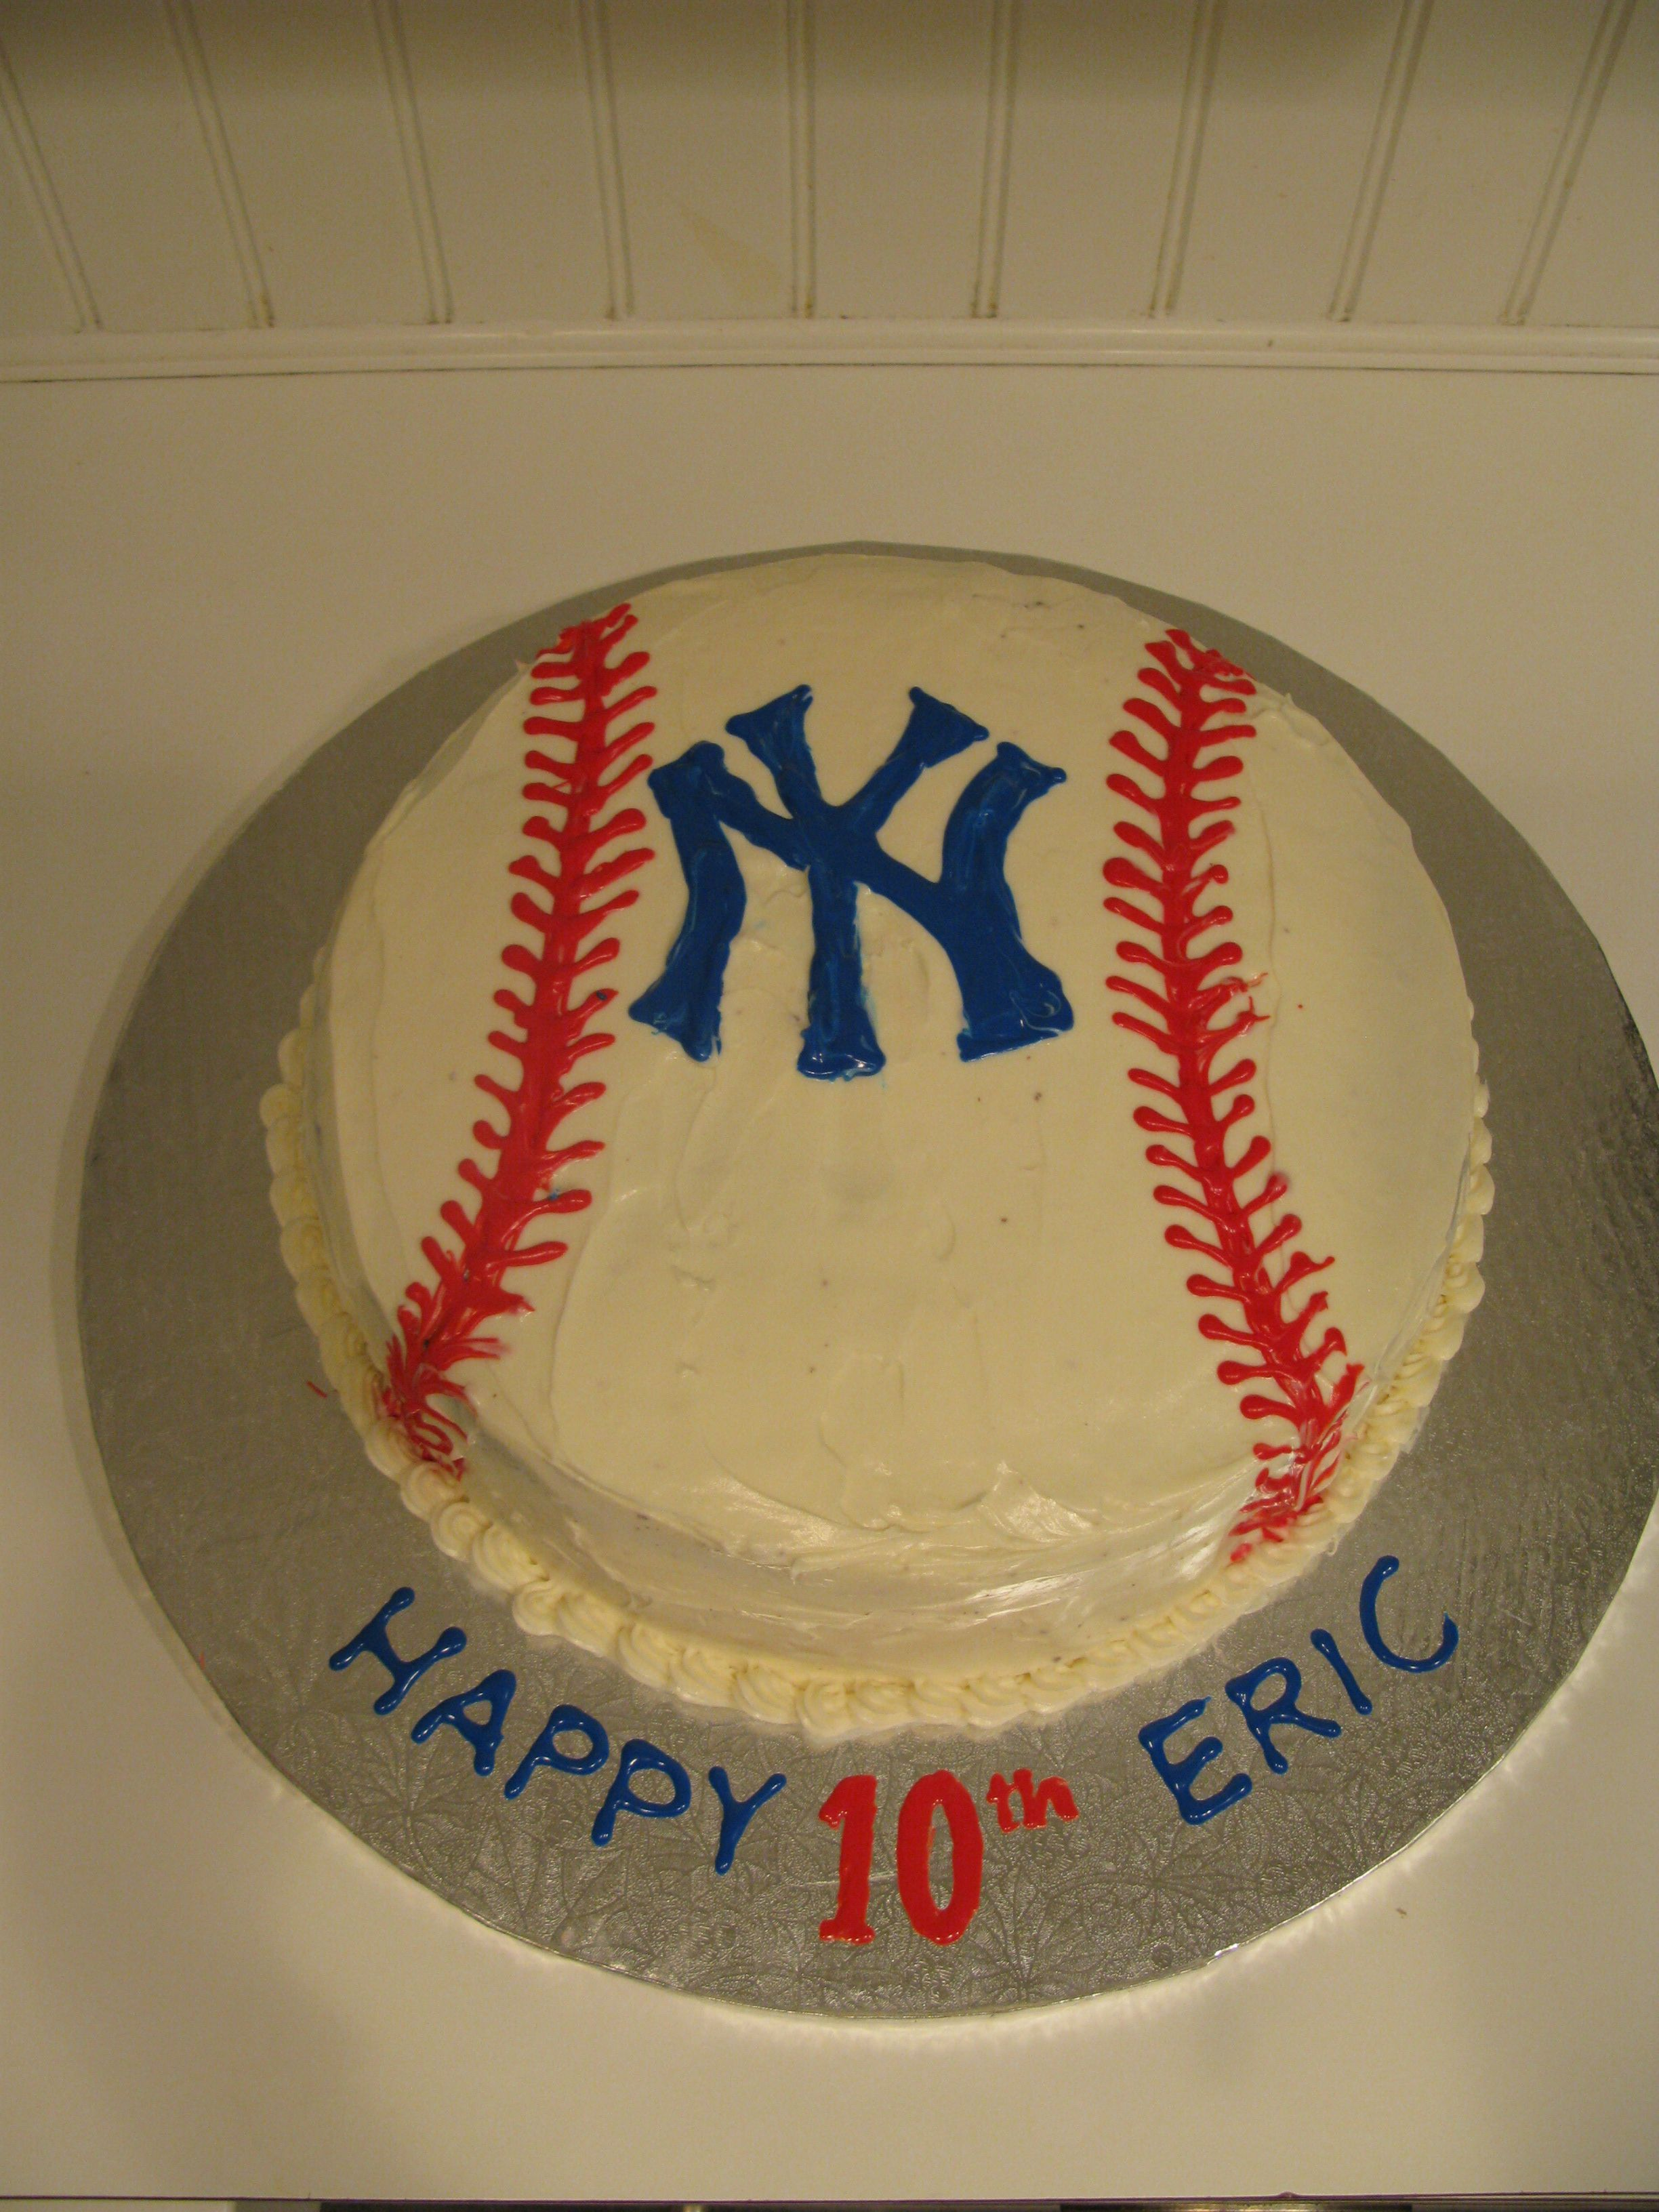 NY Yankees Baseball Cake: I'm not thrilled with the stitching on the baseball. I think I put the stitches too close together.